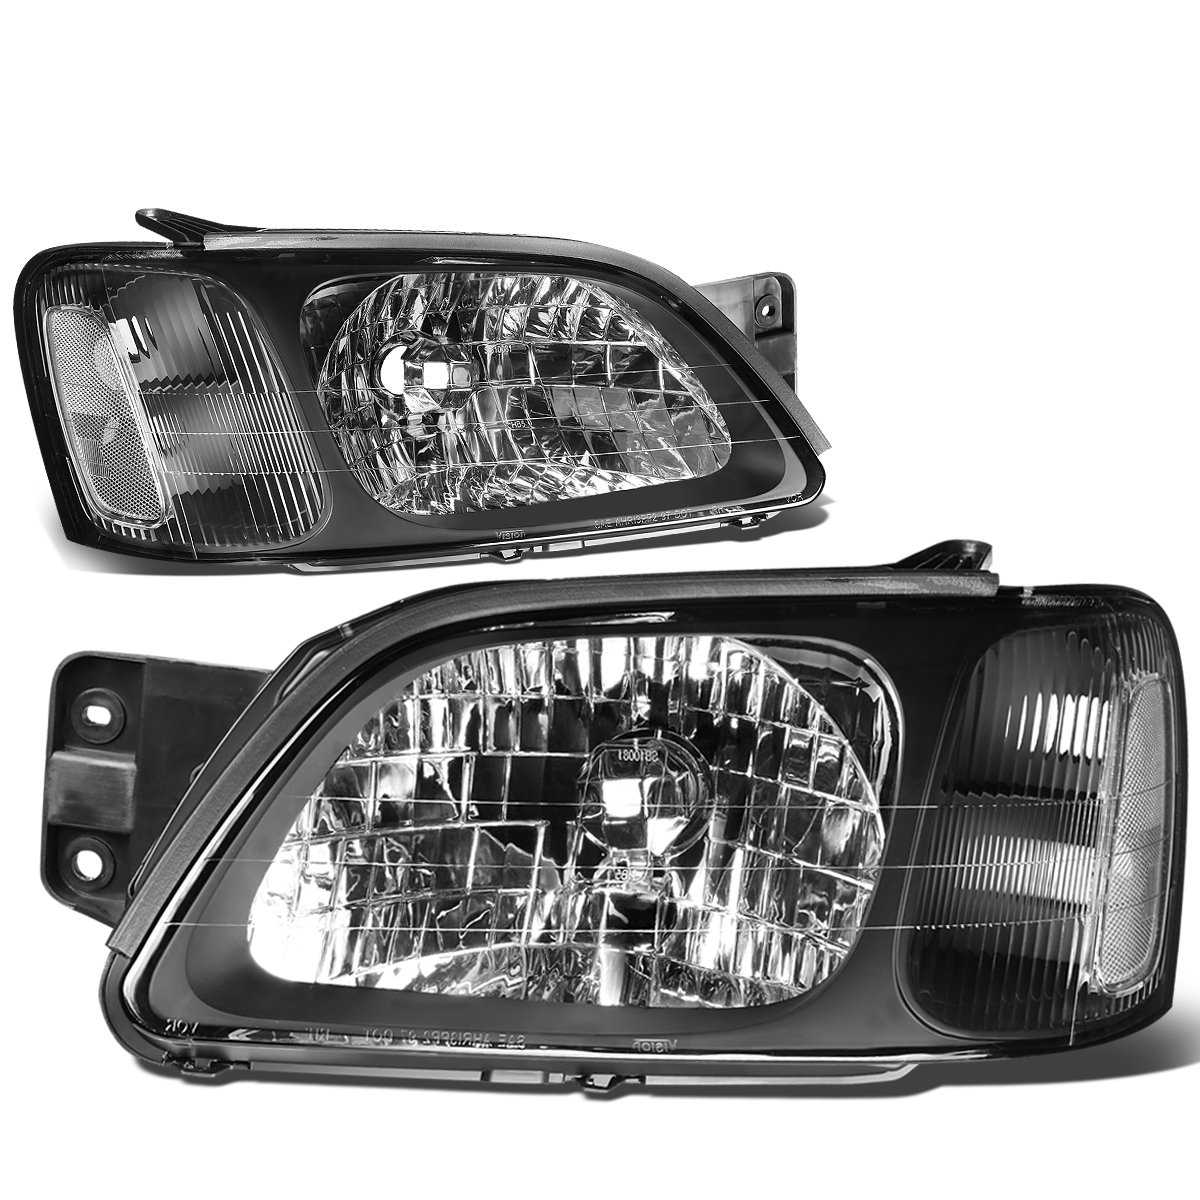 Subaru Legacy: Front position light